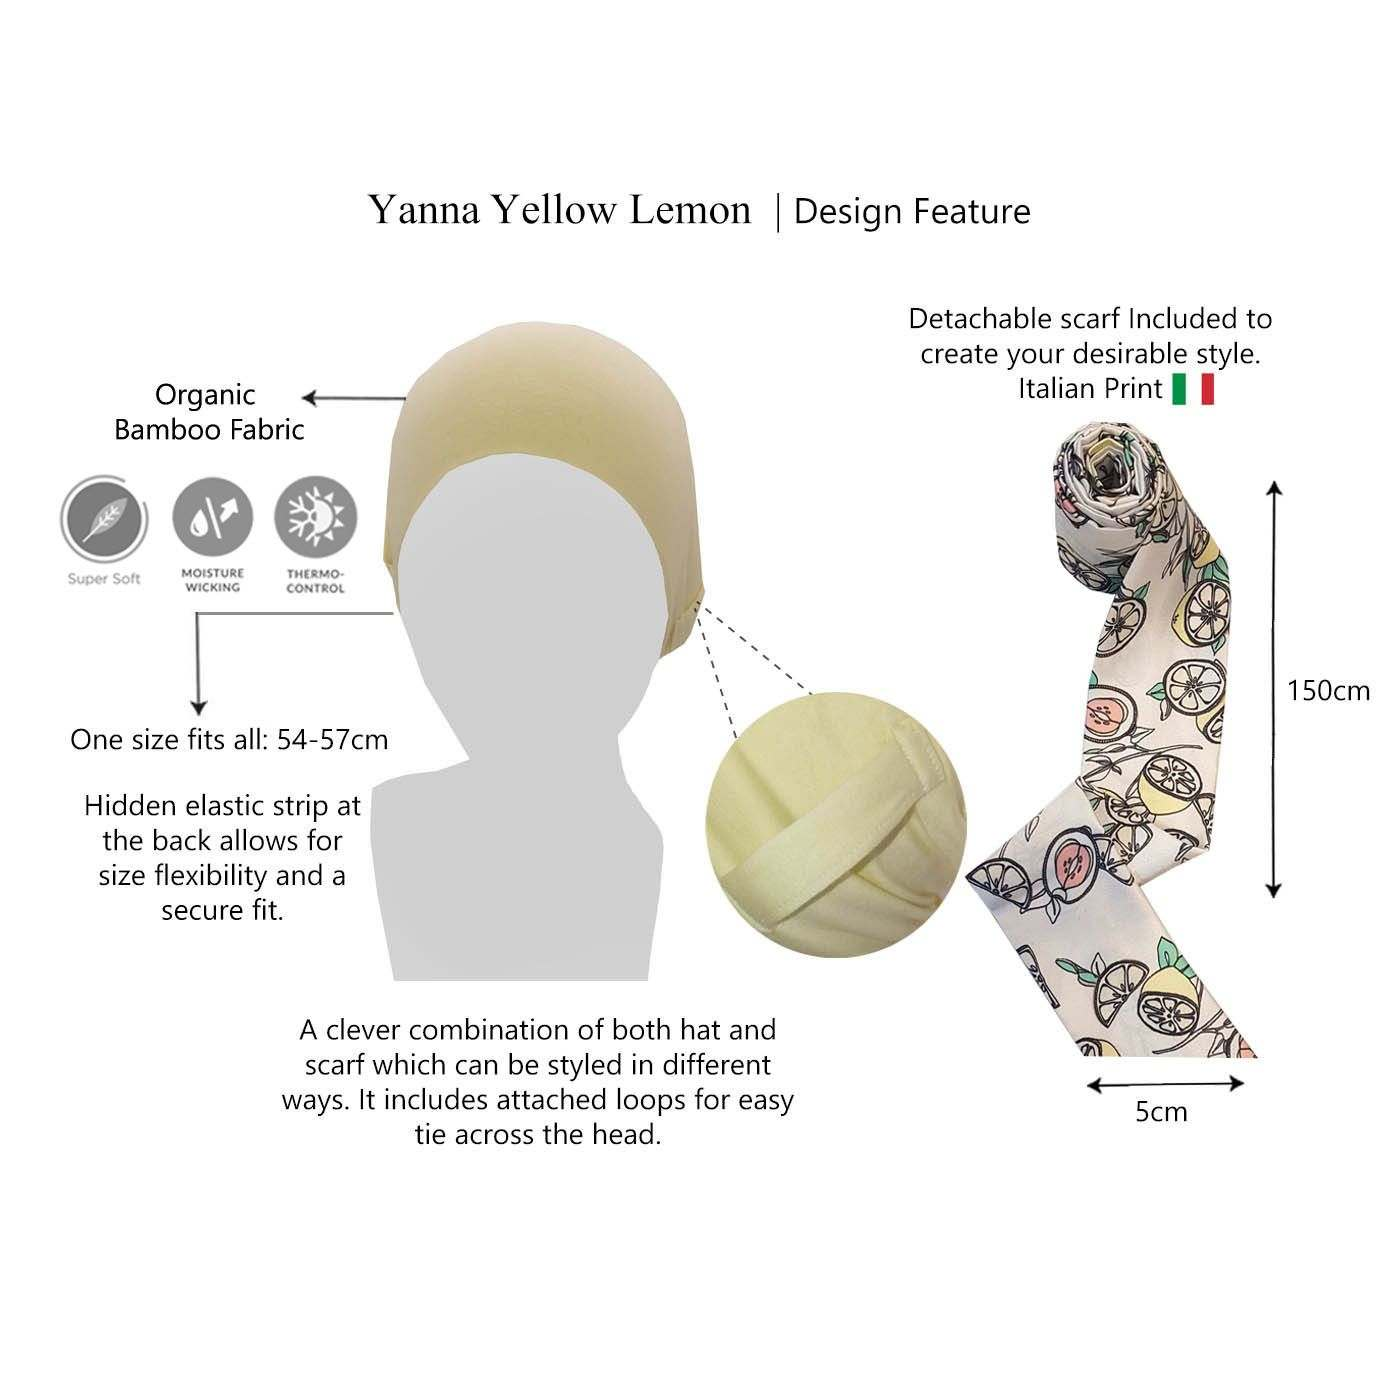 Yanna Yellow Lemon- Head wraps for women